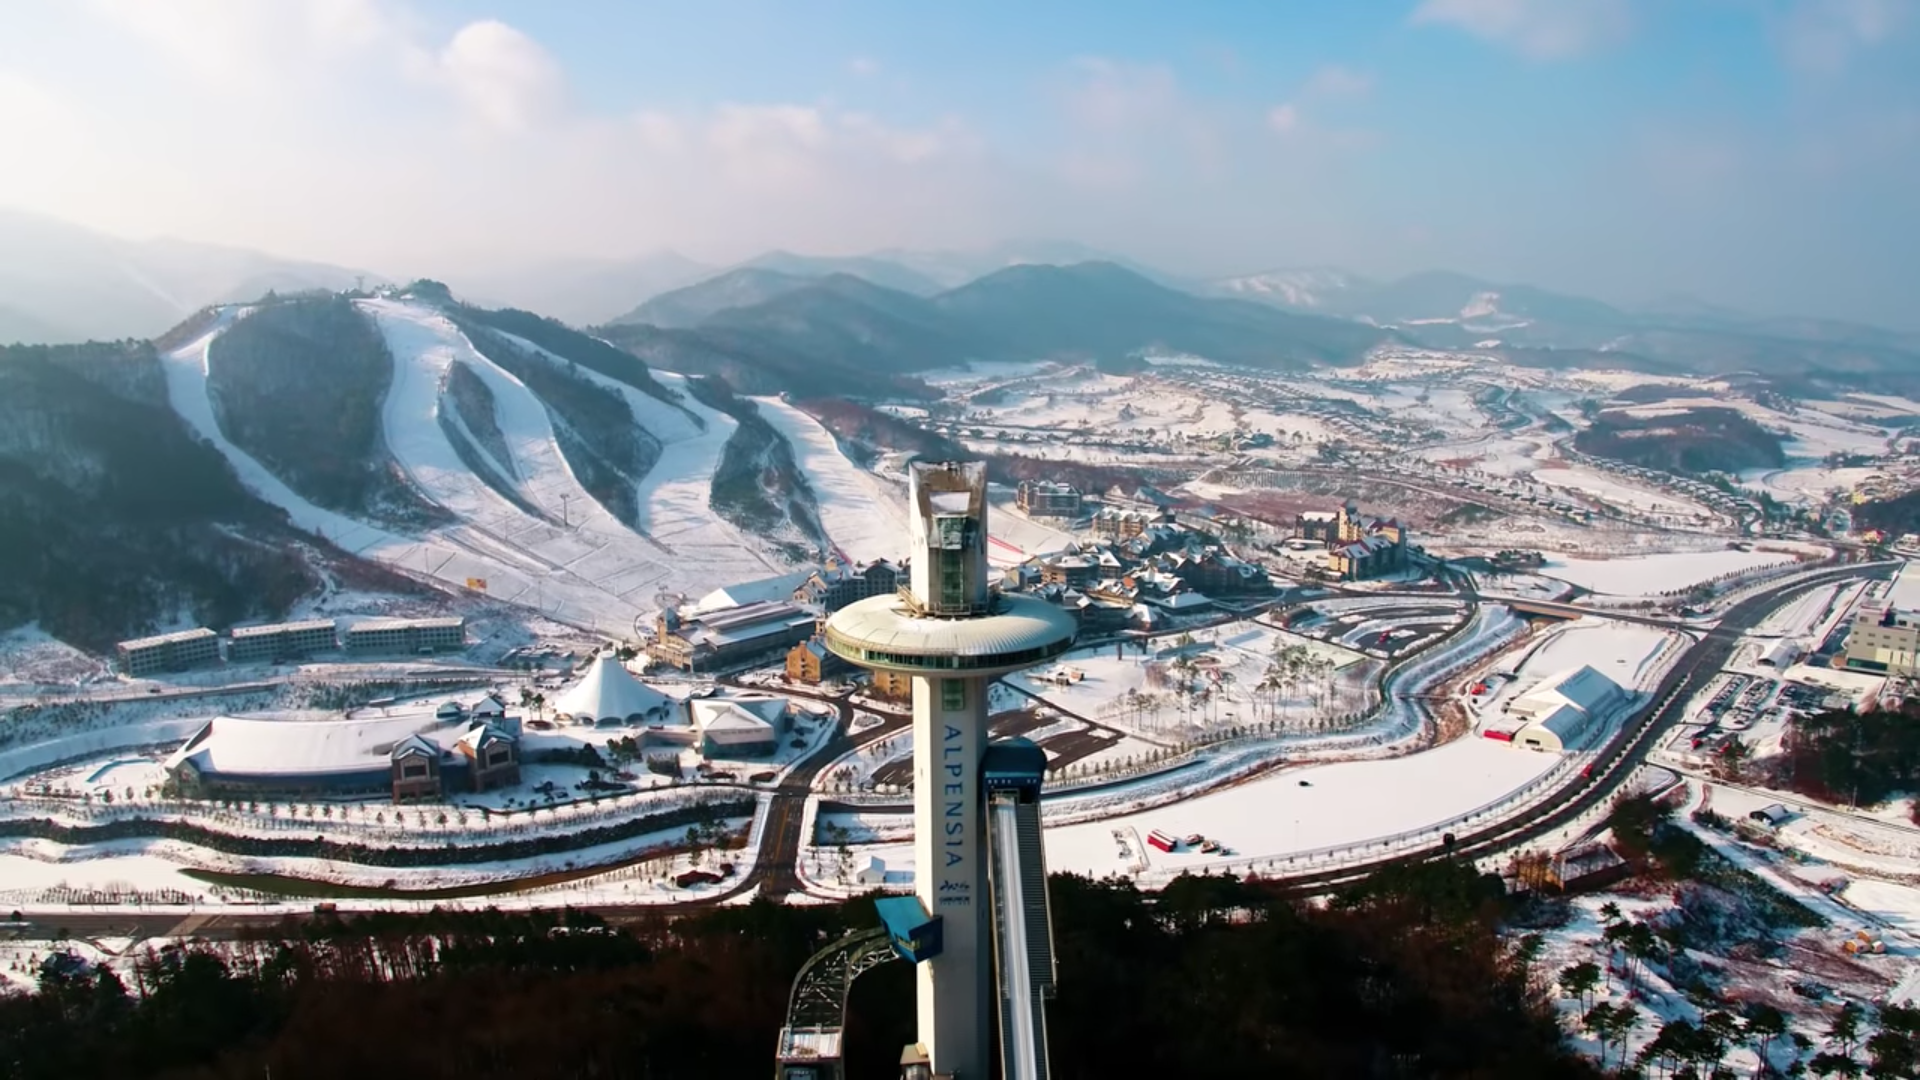 Experience the 2018 Winter Olympics with Virtual Reality on YouTube